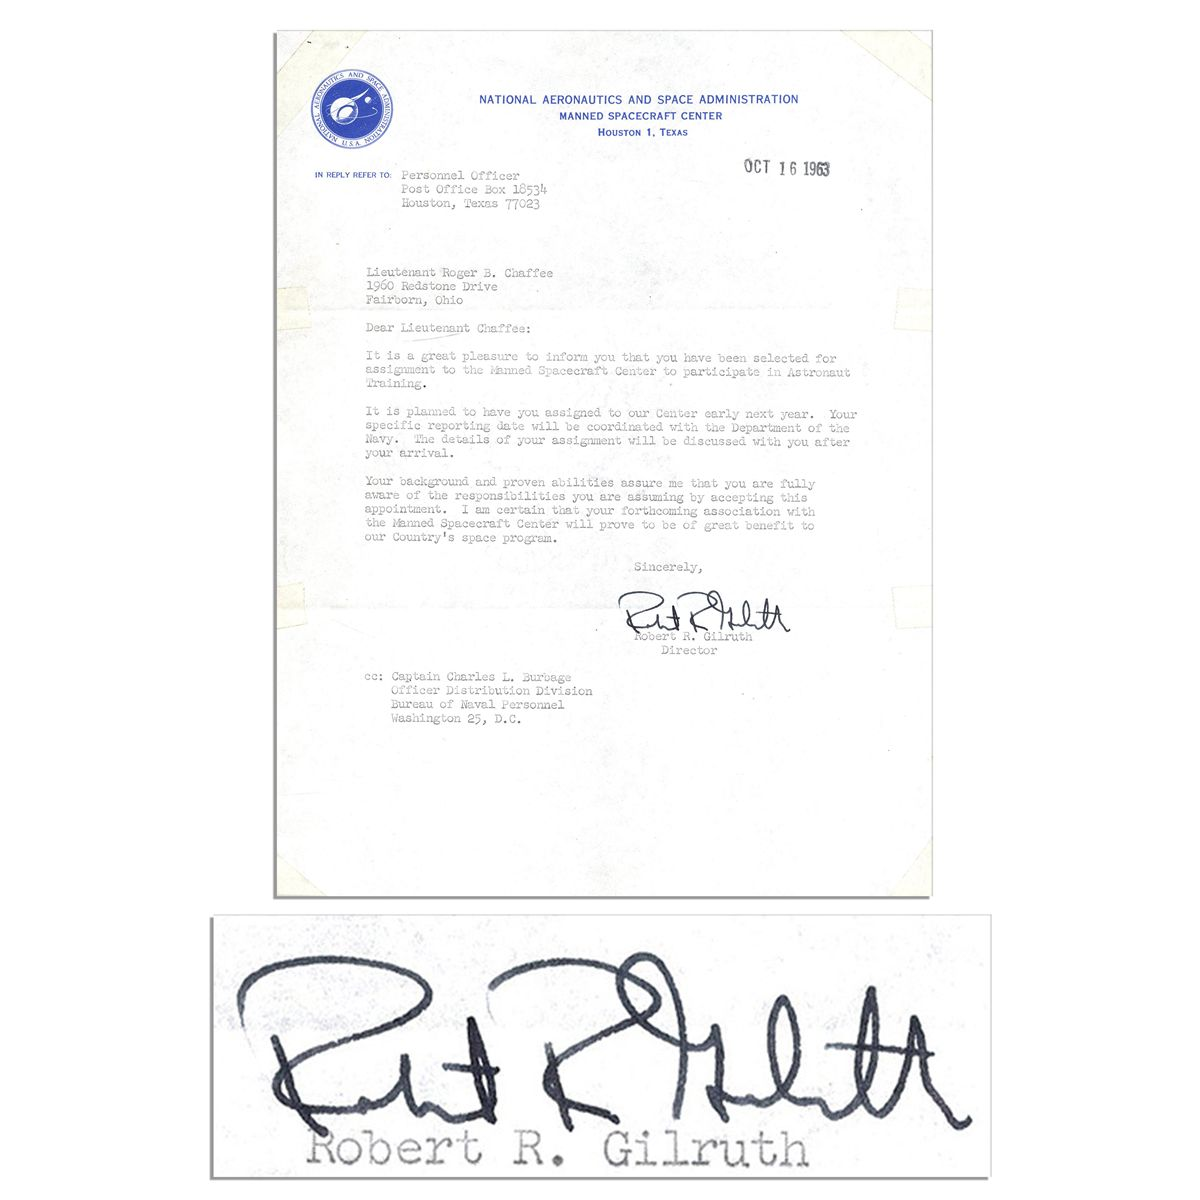 roger chaffee s astronaut acceptance letter signed by nasa roger chaffee s 1963 astronaut acceptance letter signed by nasa director gilruth great plea